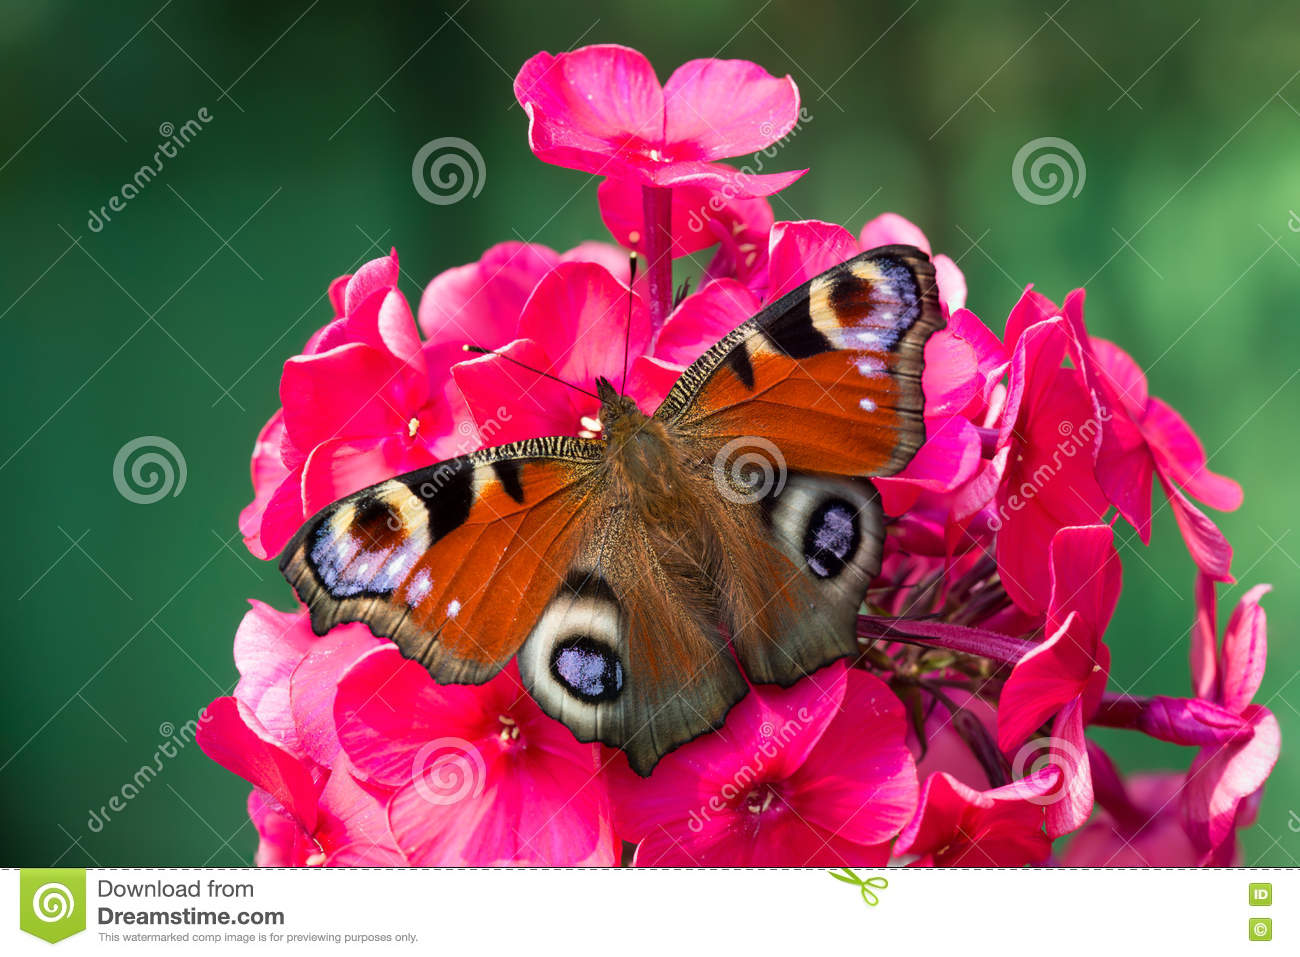 Peacock Butterfly On The Red Flower Phlox Stock Photo